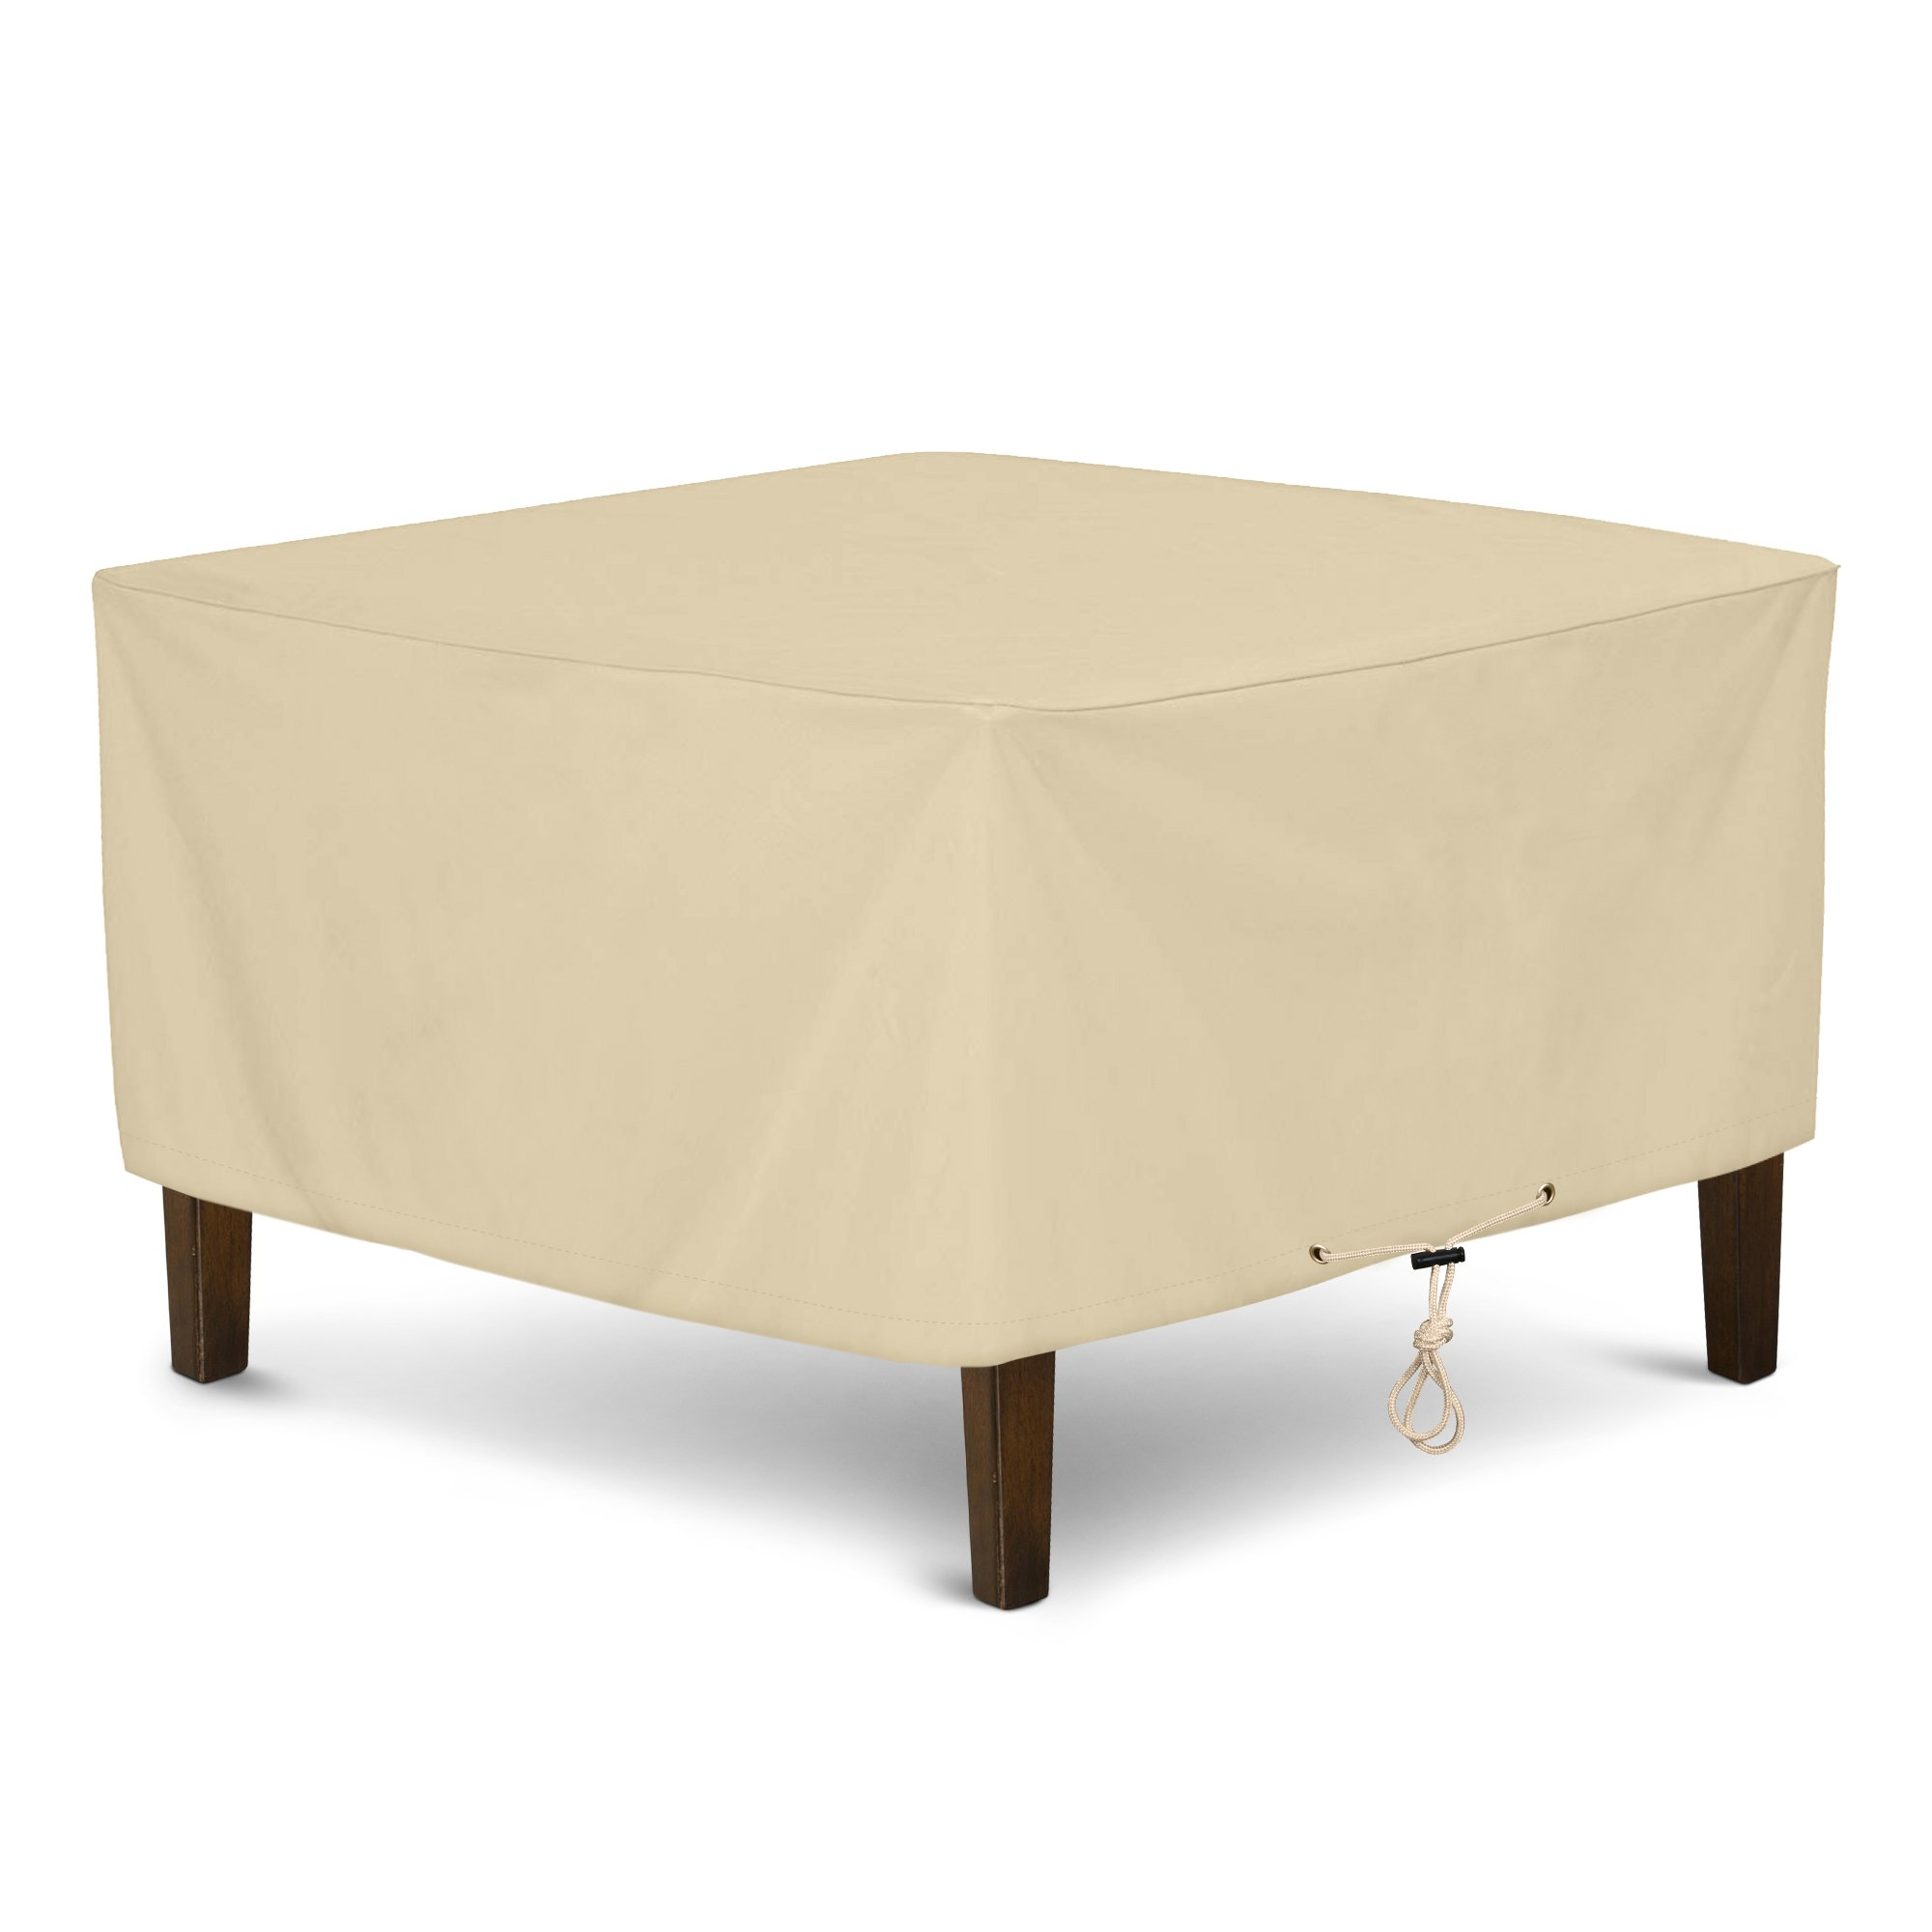 SunPatio Outdoor Ottoman Cover, Square Coffee Table Cover, Heavy Duty Waterproof Patio Furniture Side Table Cover, All Weather Protection, 32'' L x 32'' W x 18'' H, Beige by SunPatio